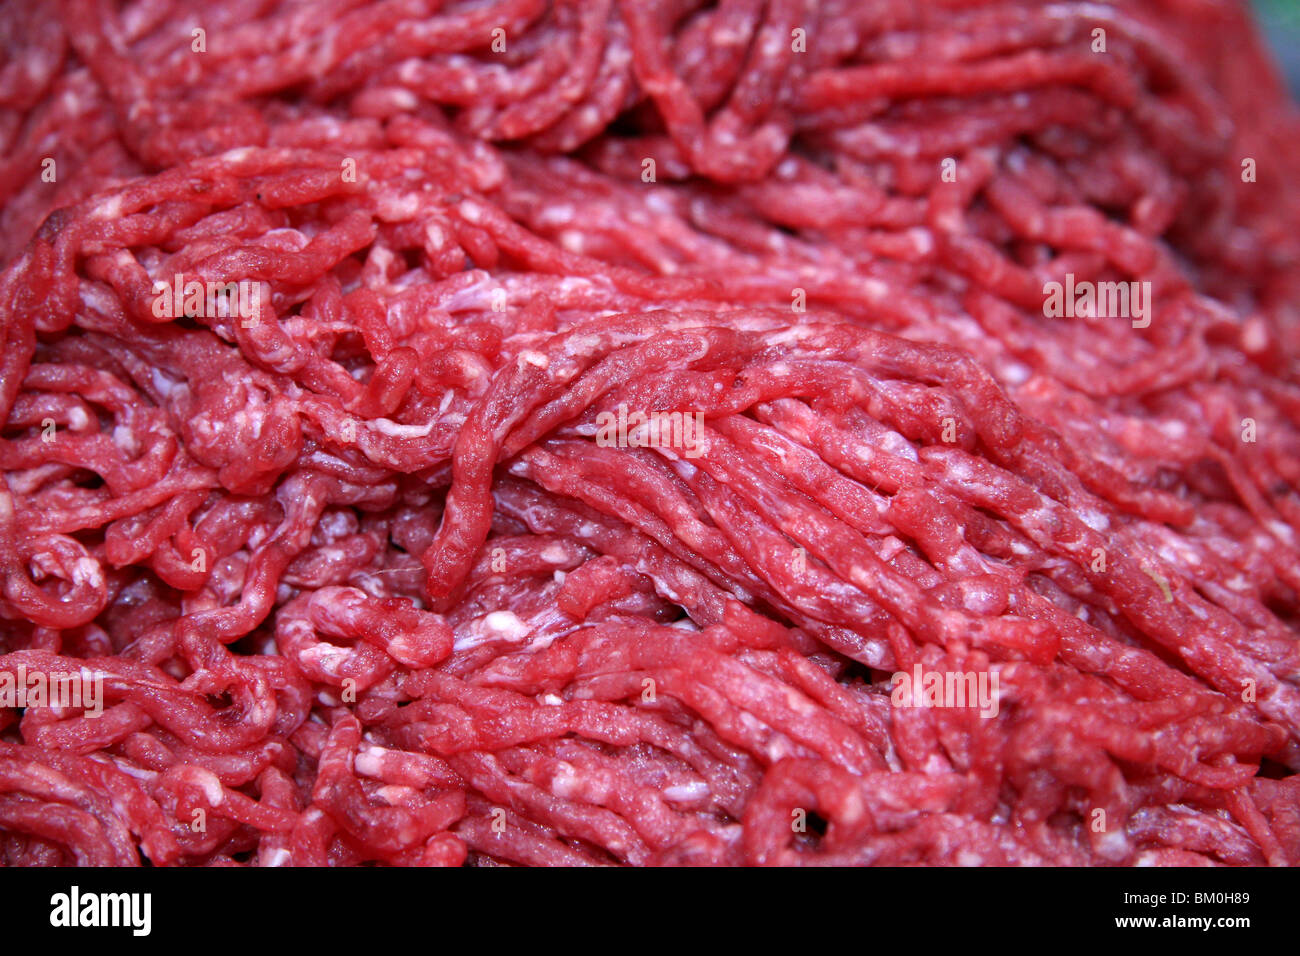 detailed image of lean minced meat / beef - Stock Image